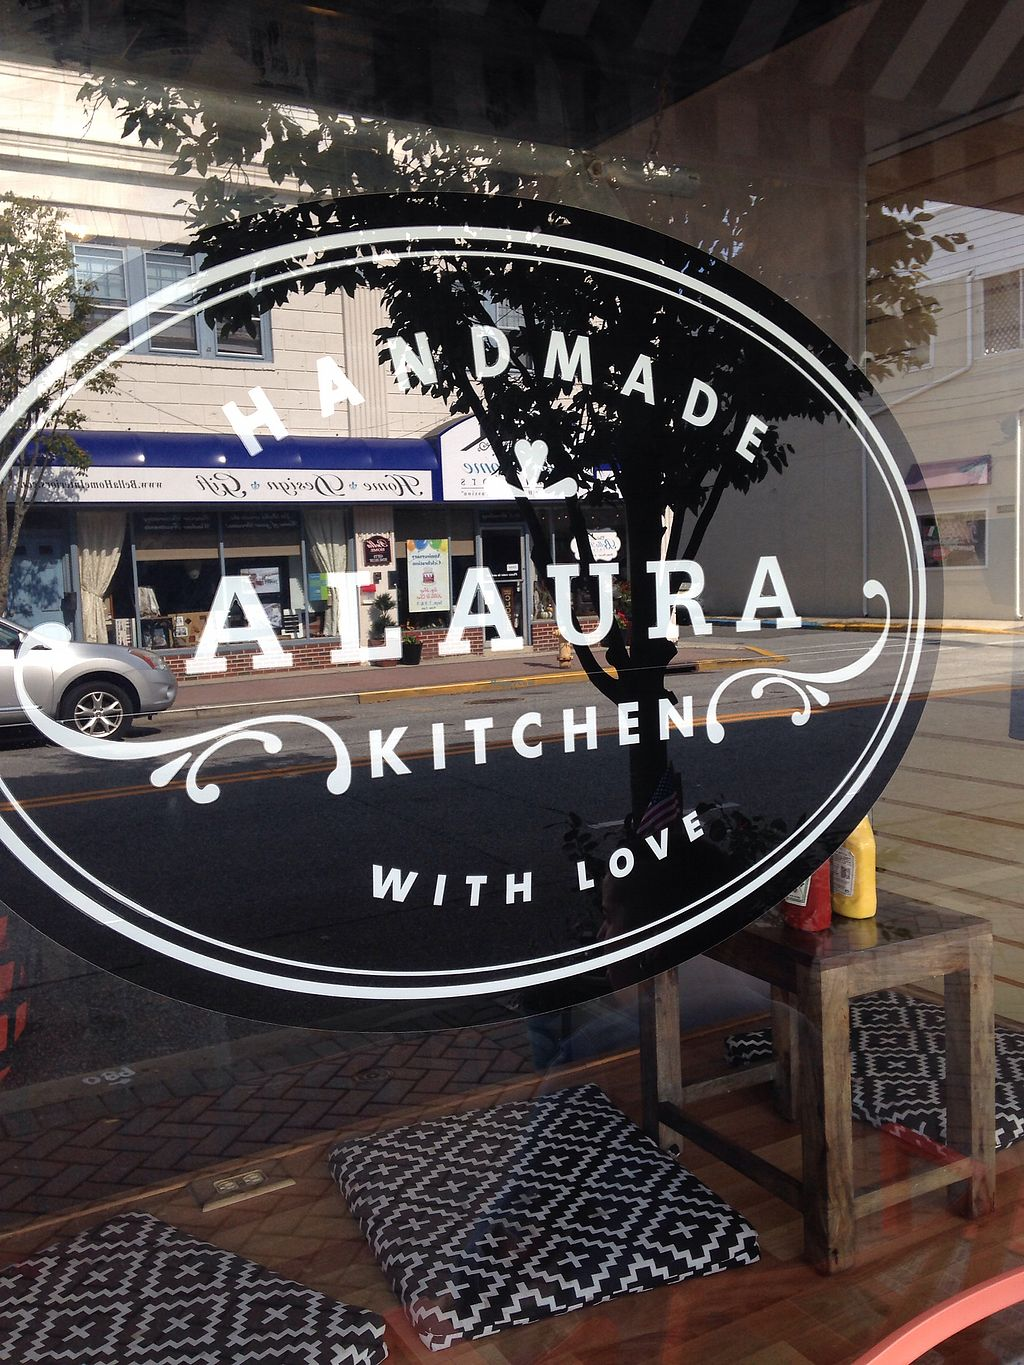 """Photo of Alaura Kitchen and Candy  by <a href=""""/members/profile/Genyvieve"""">Genyvieve</a> <br/>pitman nj ice cream parlor offering homemade vegan ice cream <br/> September 11, 2017  - <a href='/contact/abuse/image/100723/303368'>Report</a>"""